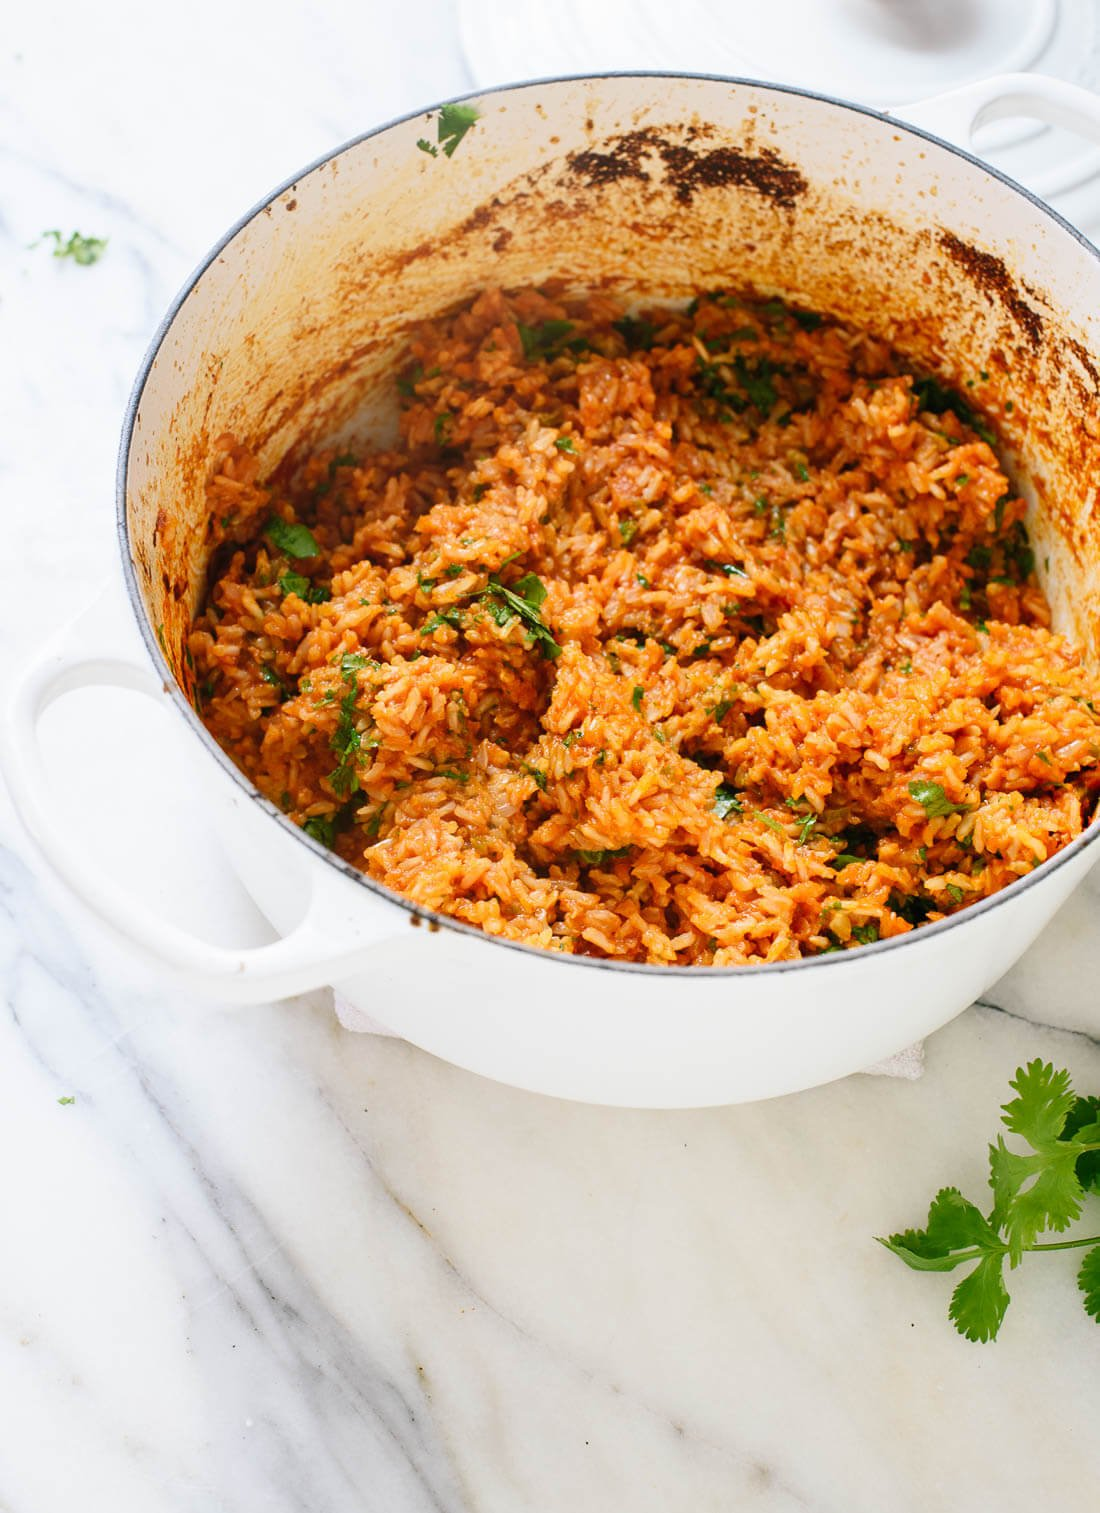 Delicious Spanish Brown Rice Recipe  It's Easy To Make, Just Bake It All In